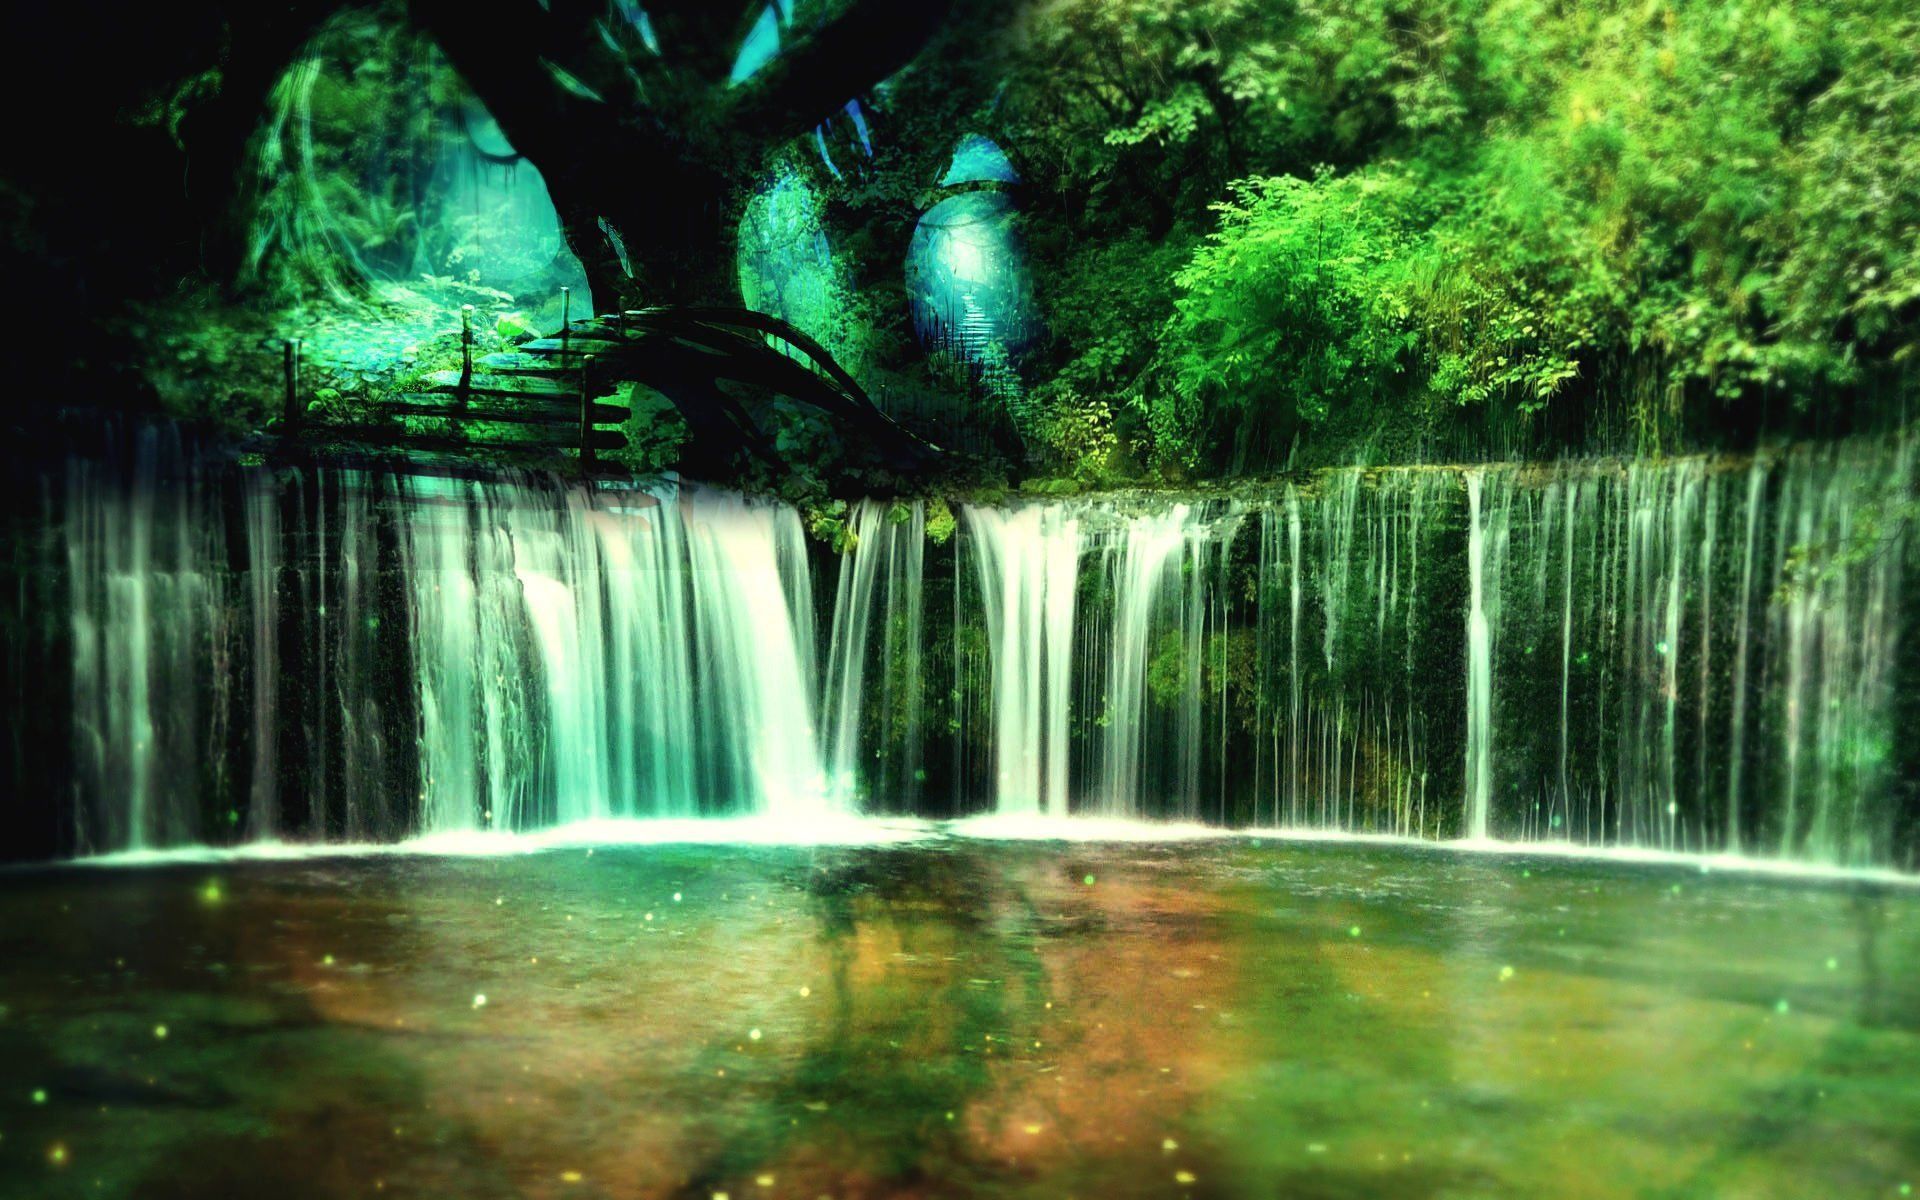 largest-waterfall-landscape-wallpaper-7 | wallpapers | pinterest